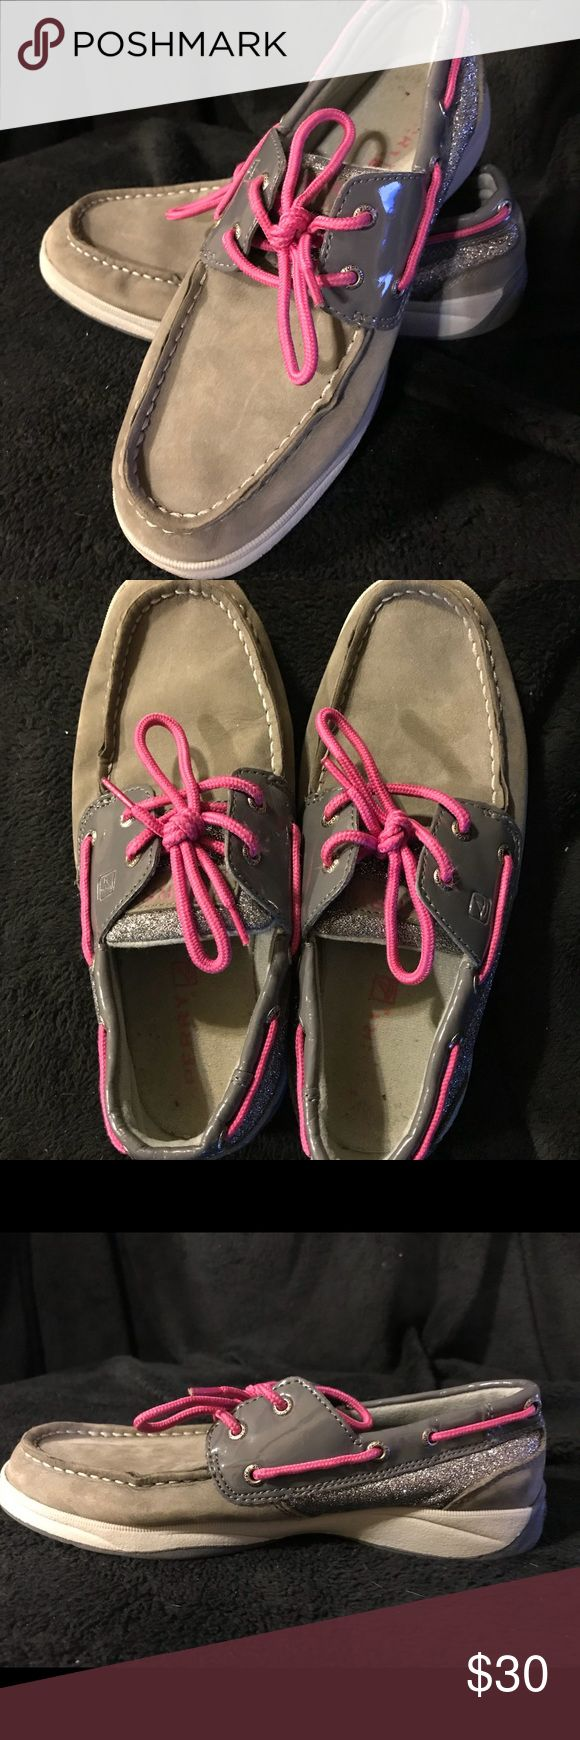 Grey Glitter and pink Sperrys Girls size 4 grey glitter and pink Sperrys. Slightly worn. Sperry Shoes Flats & Loafers